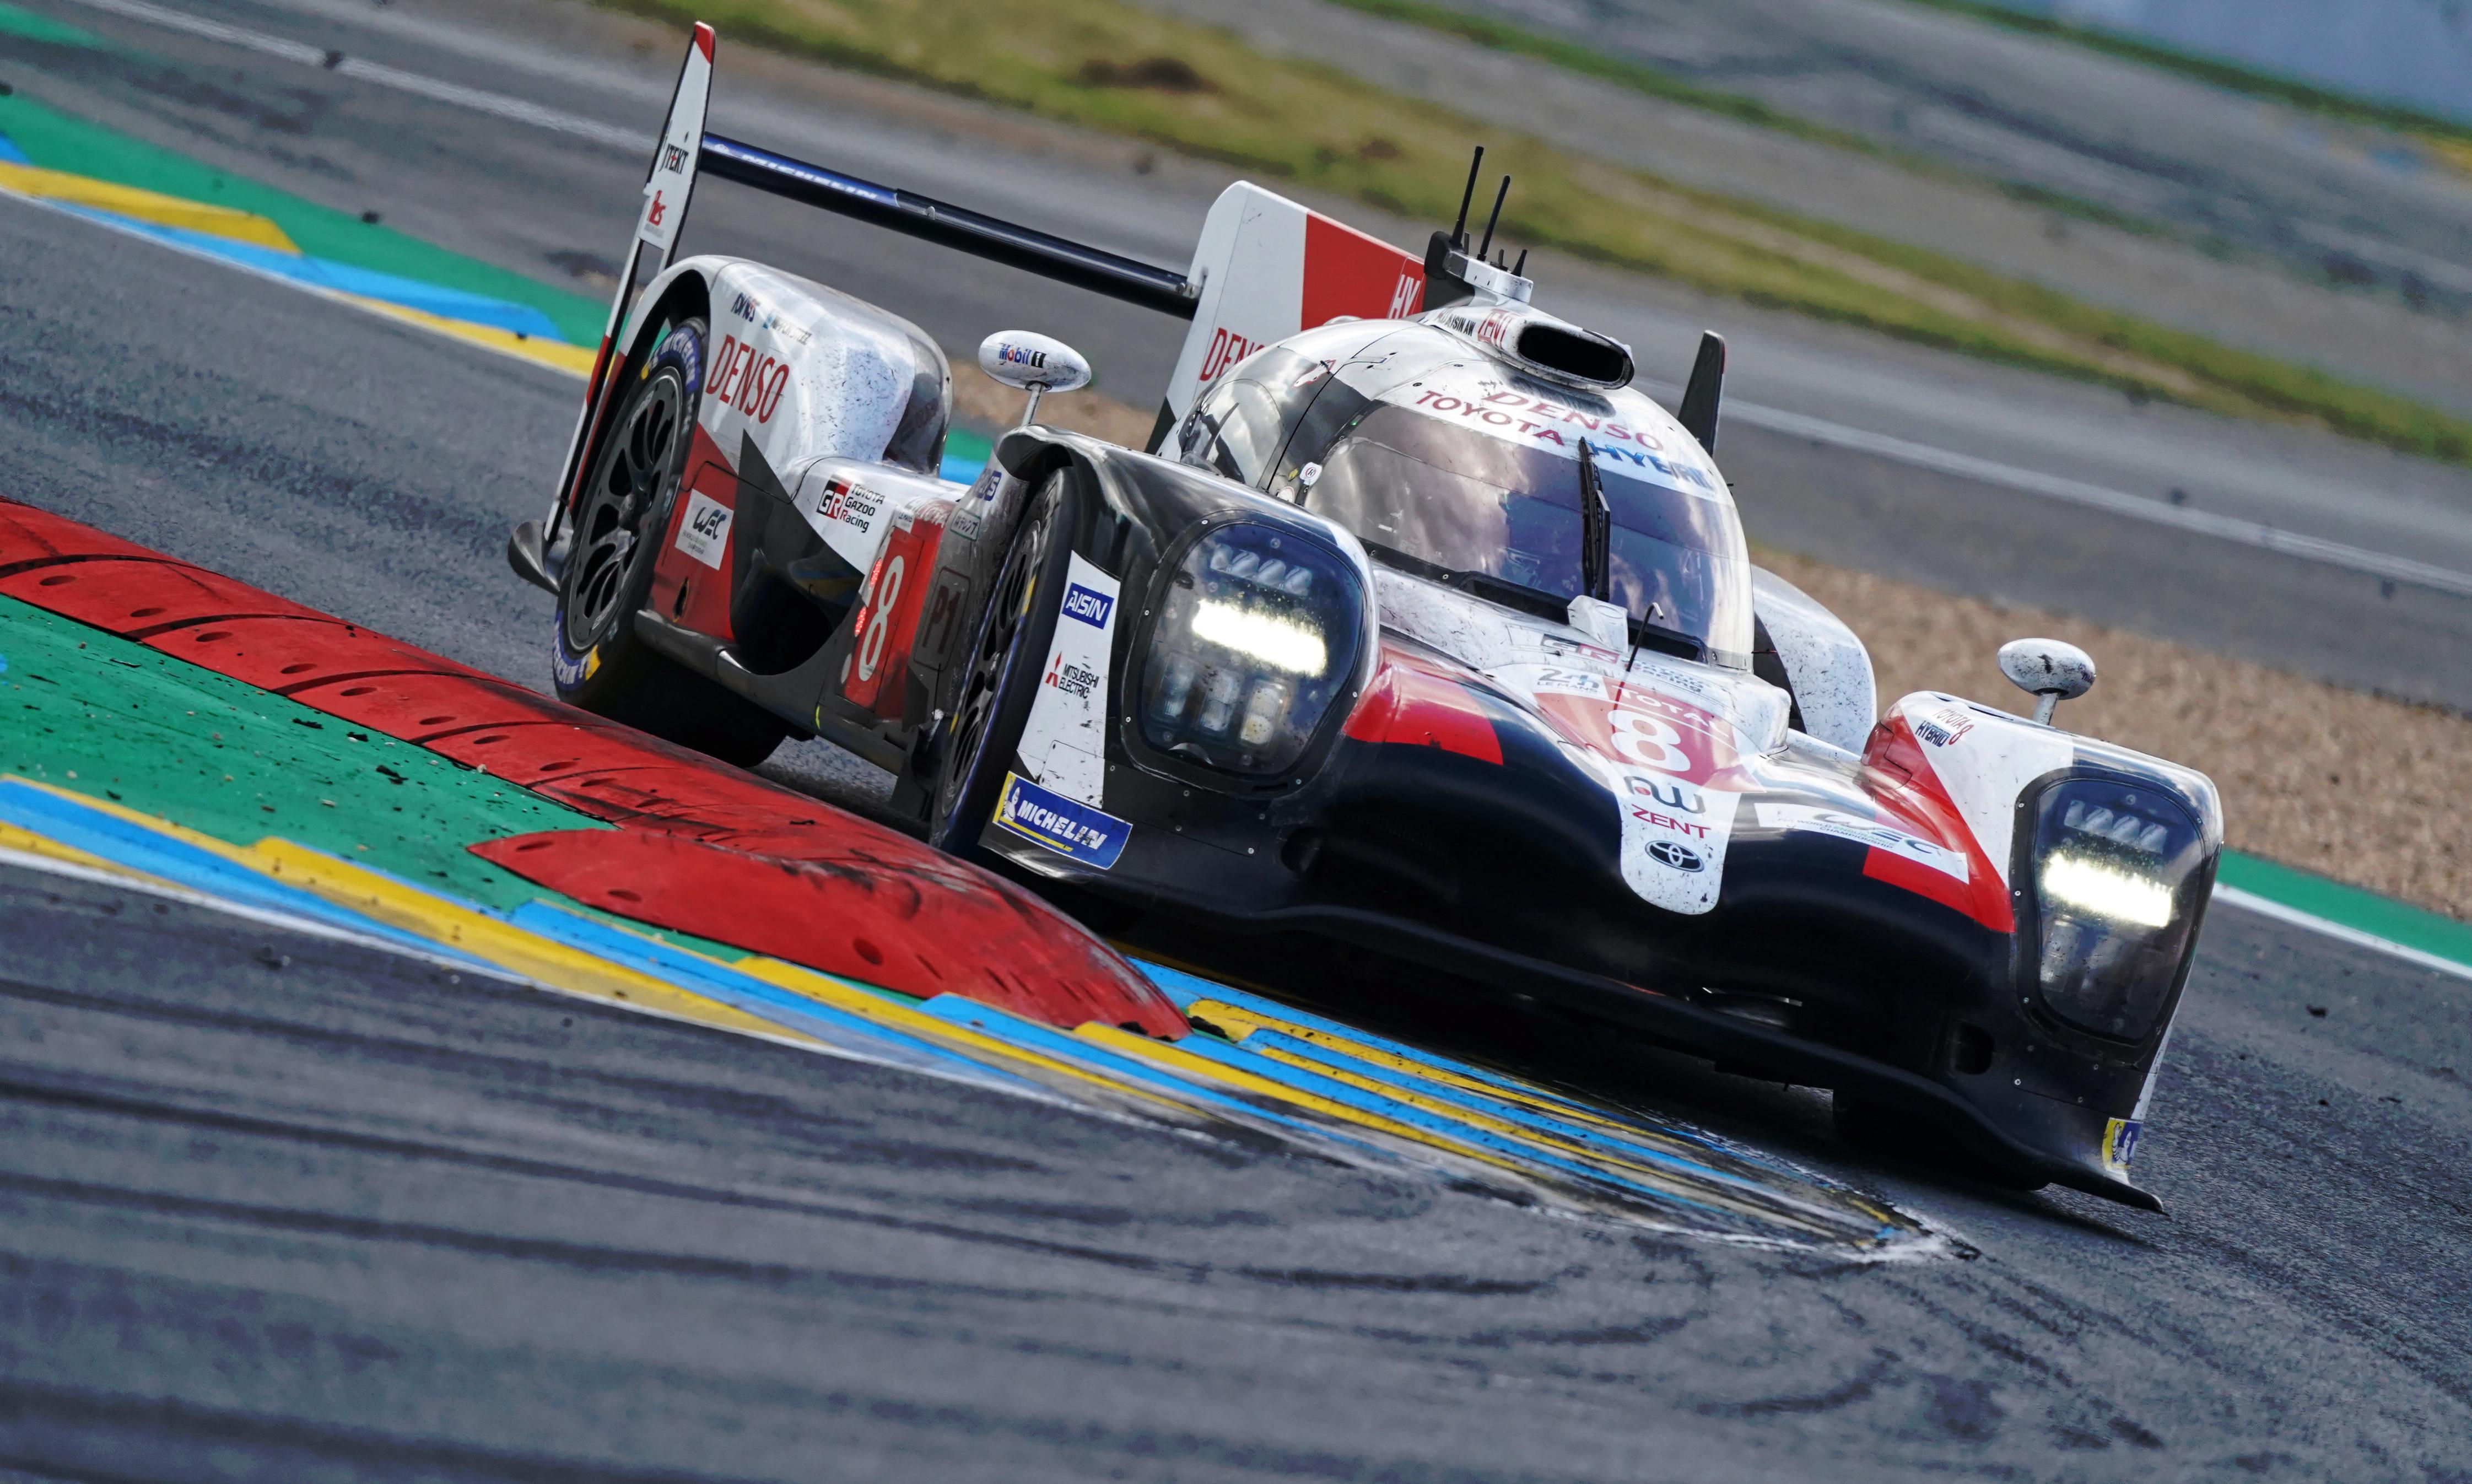 Le Mans 24 Hours: Fernando Alonso's Toyota team claim victory in race